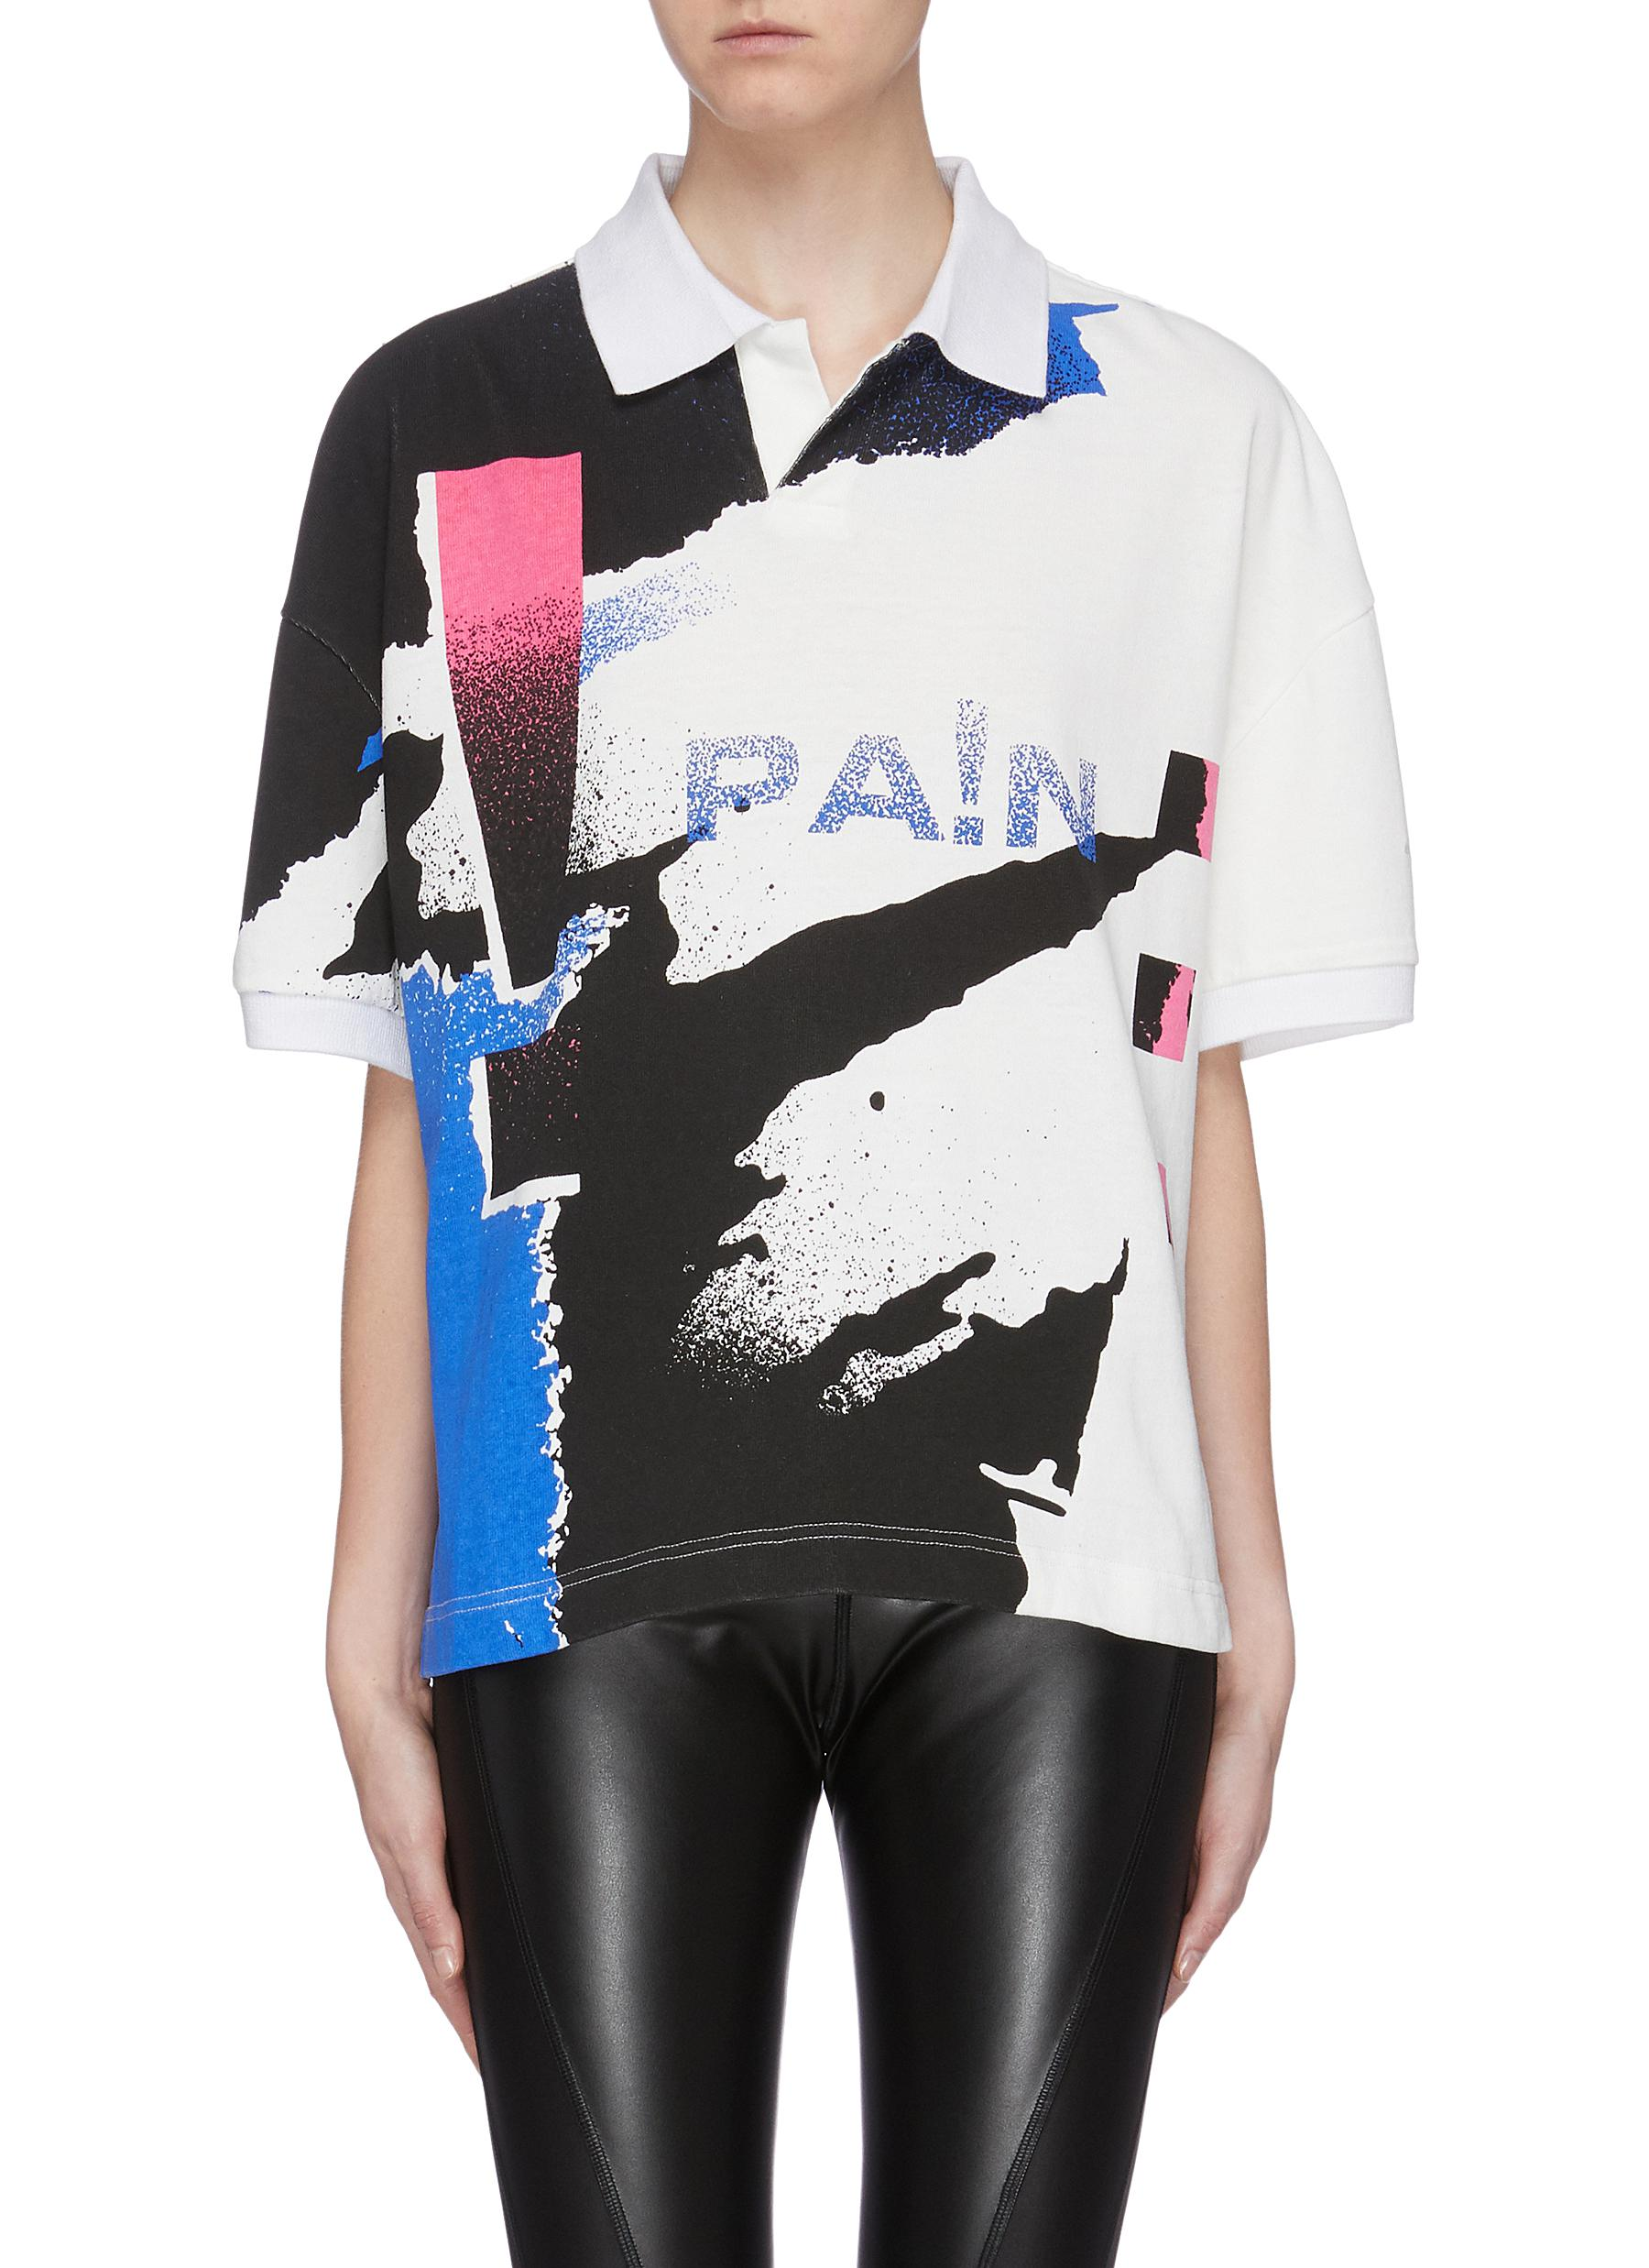 Graphic print polo shirt by Alexanderwang